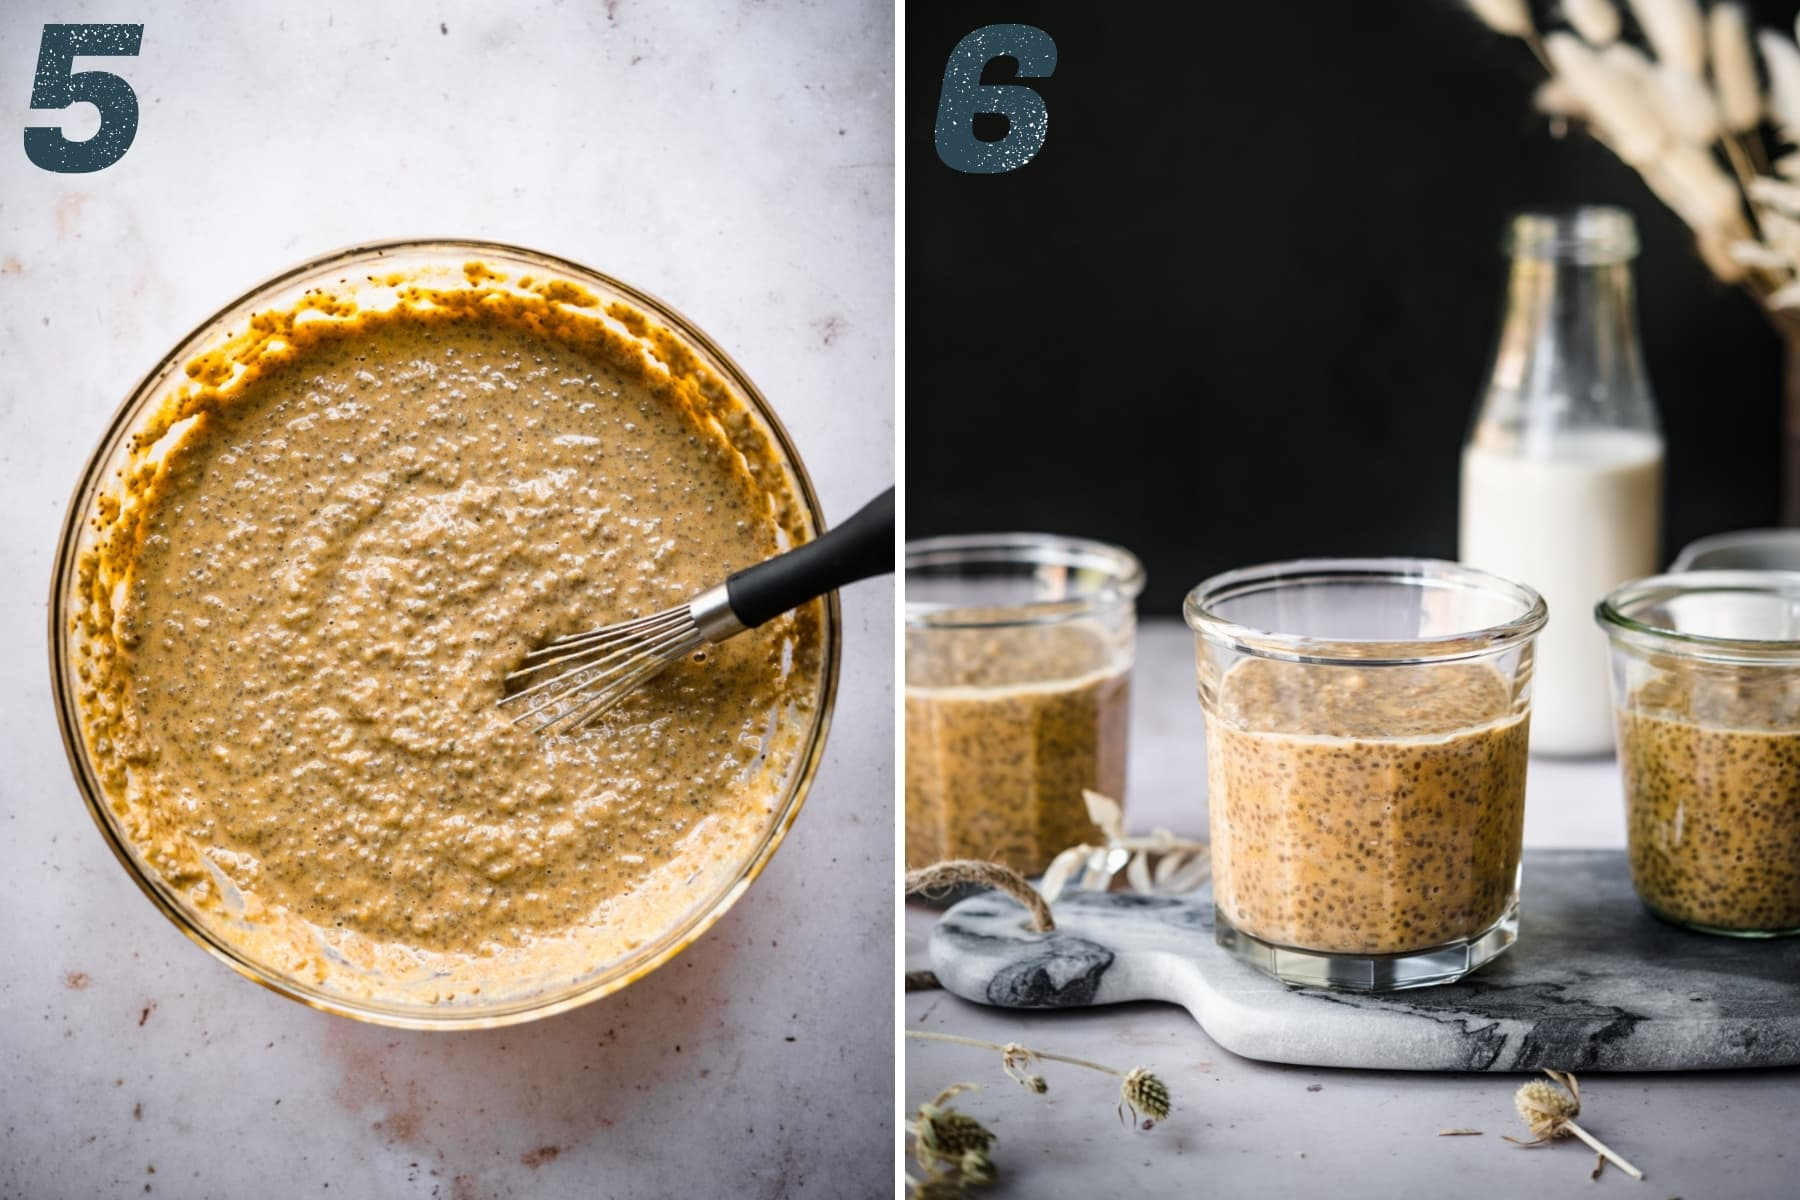 chia pudding in a large mixing bowl and in small glass jars for serving.